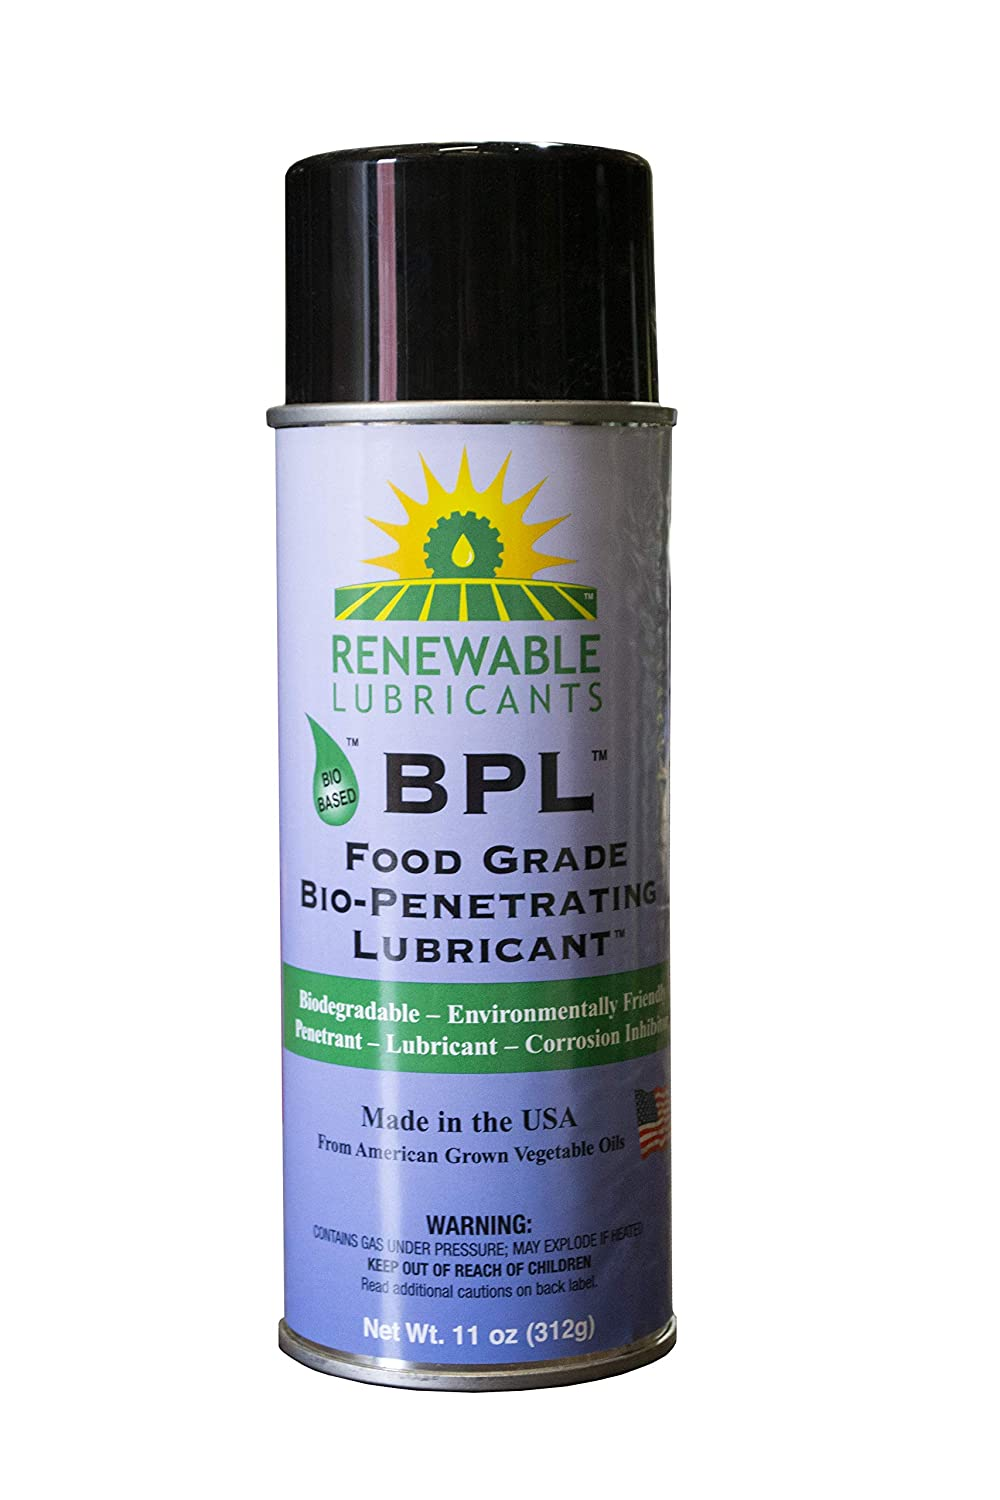 Renewable Lubricants Food Grade Bio-Penetrating Lubricant, Multipurpose, 11 oz Aerosol Can